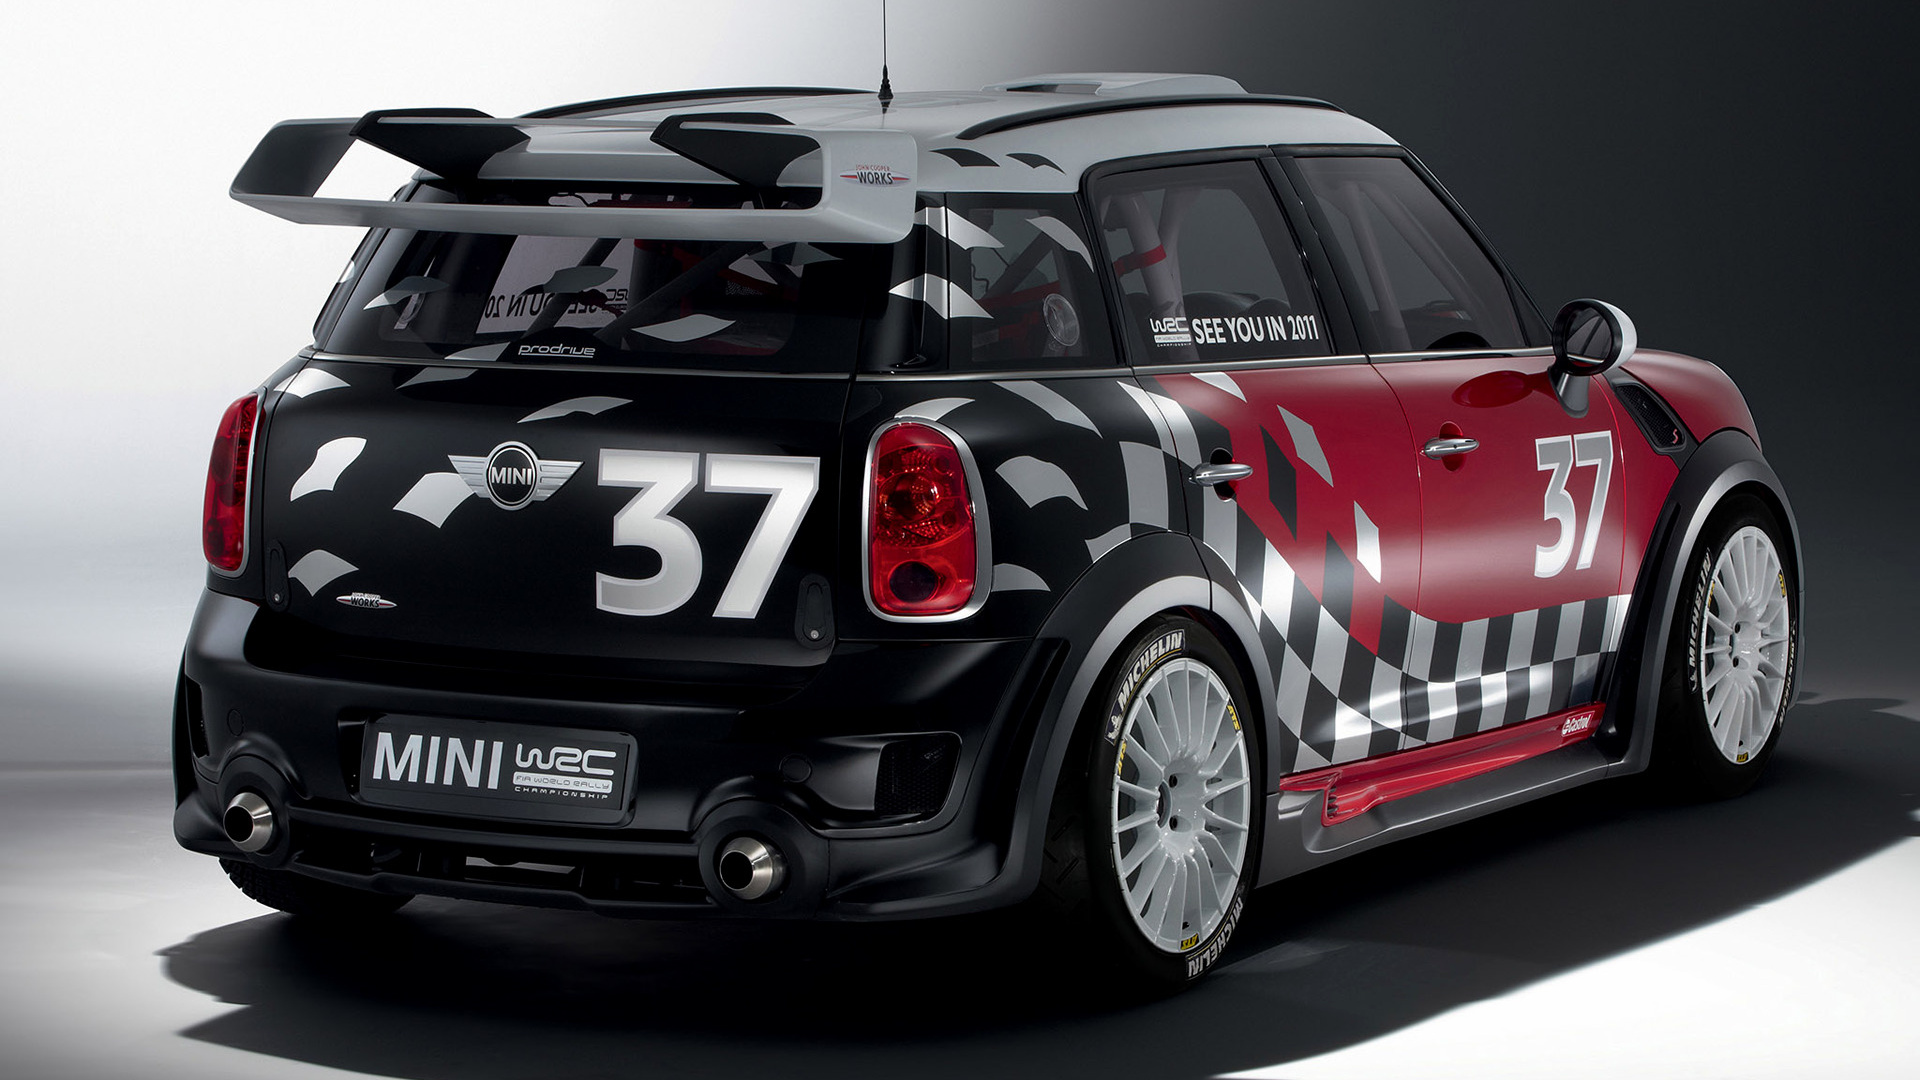 mini john cooper works countryman wrc prototype 2010 wallpapers and hd images car pixel. Black Bedroom Furniture Sets. Home Design Ideas